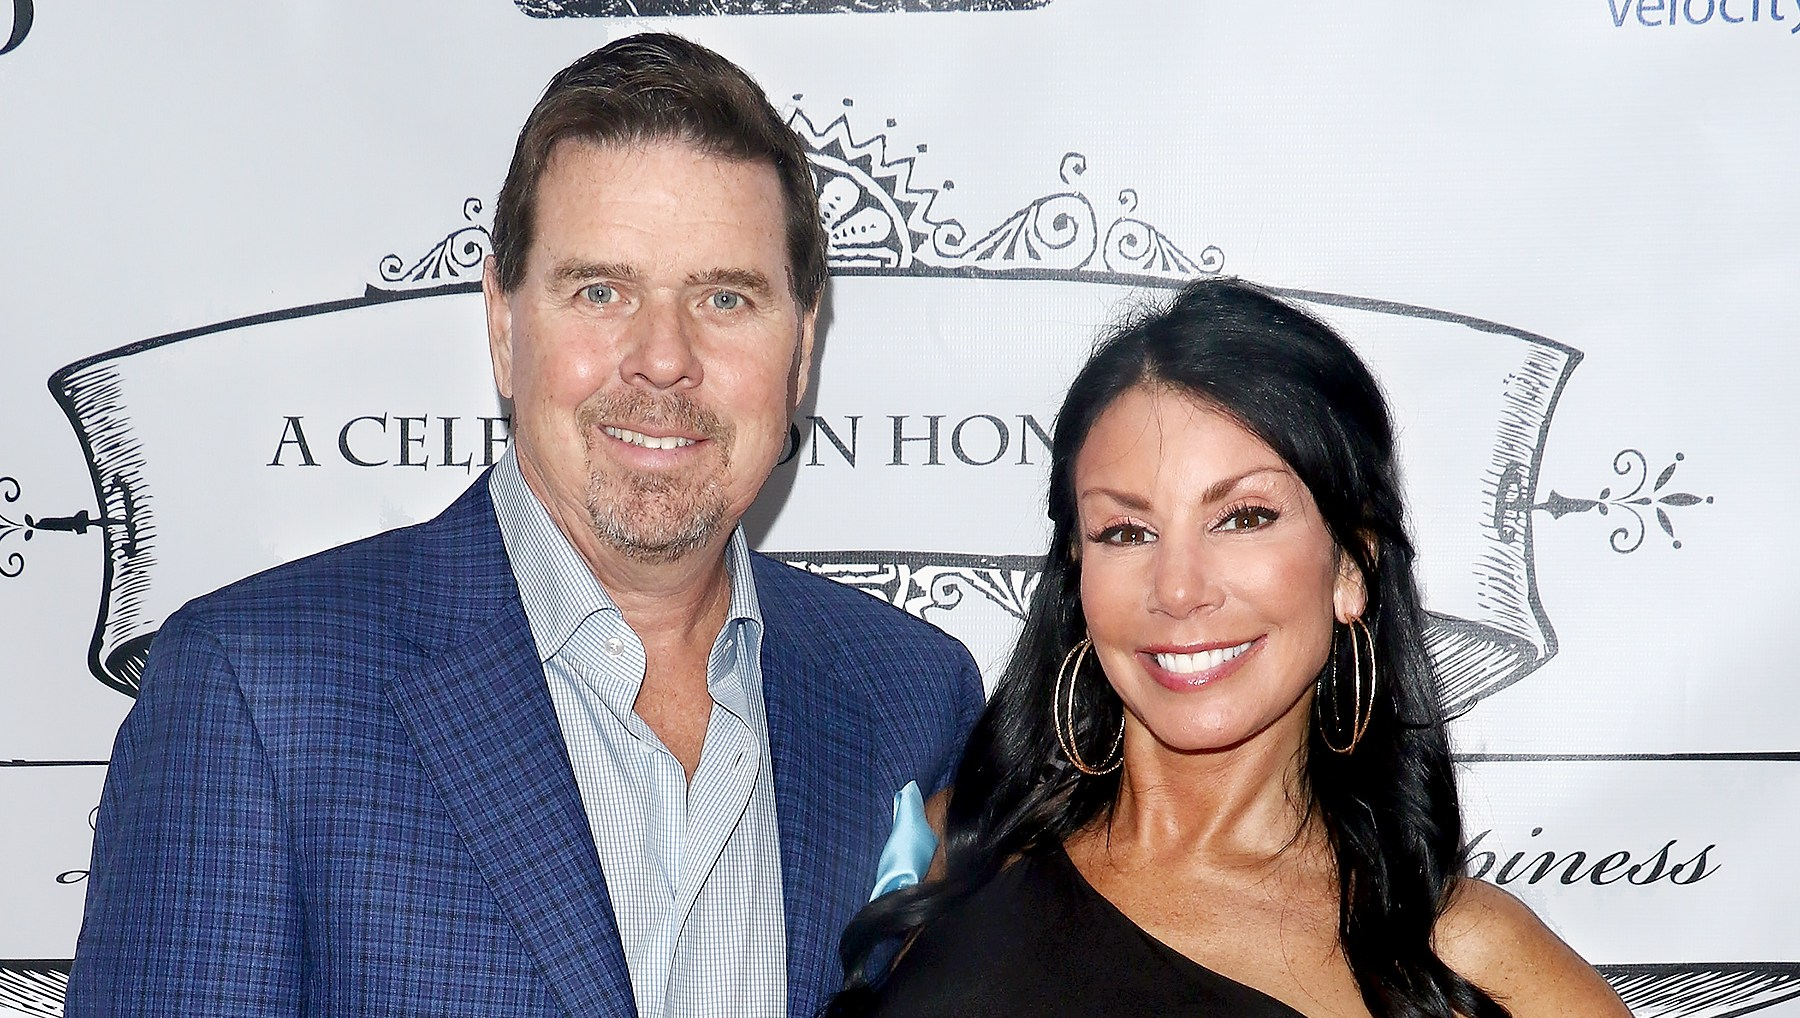 Danielle-Staub-and-Marty-Caffrey-restraining-orders